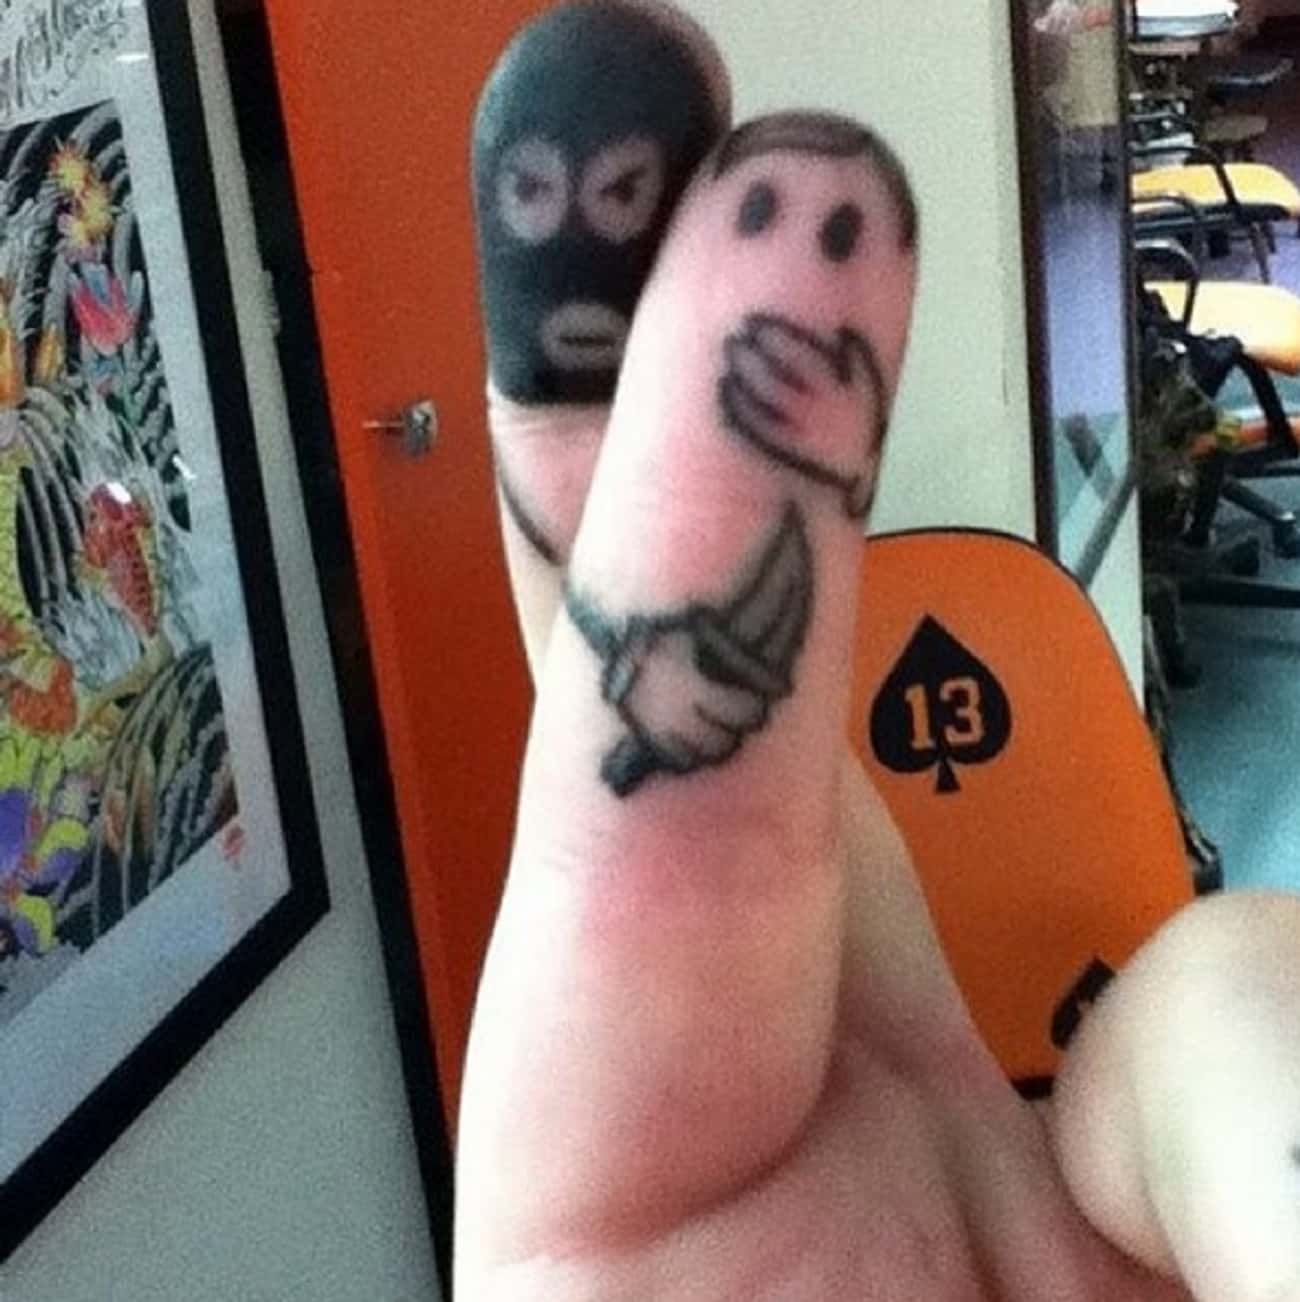 Sh*t Just Got Real is listed (or ranked) 3 on the list 20 Tattoos That Make Hilarious Jokes